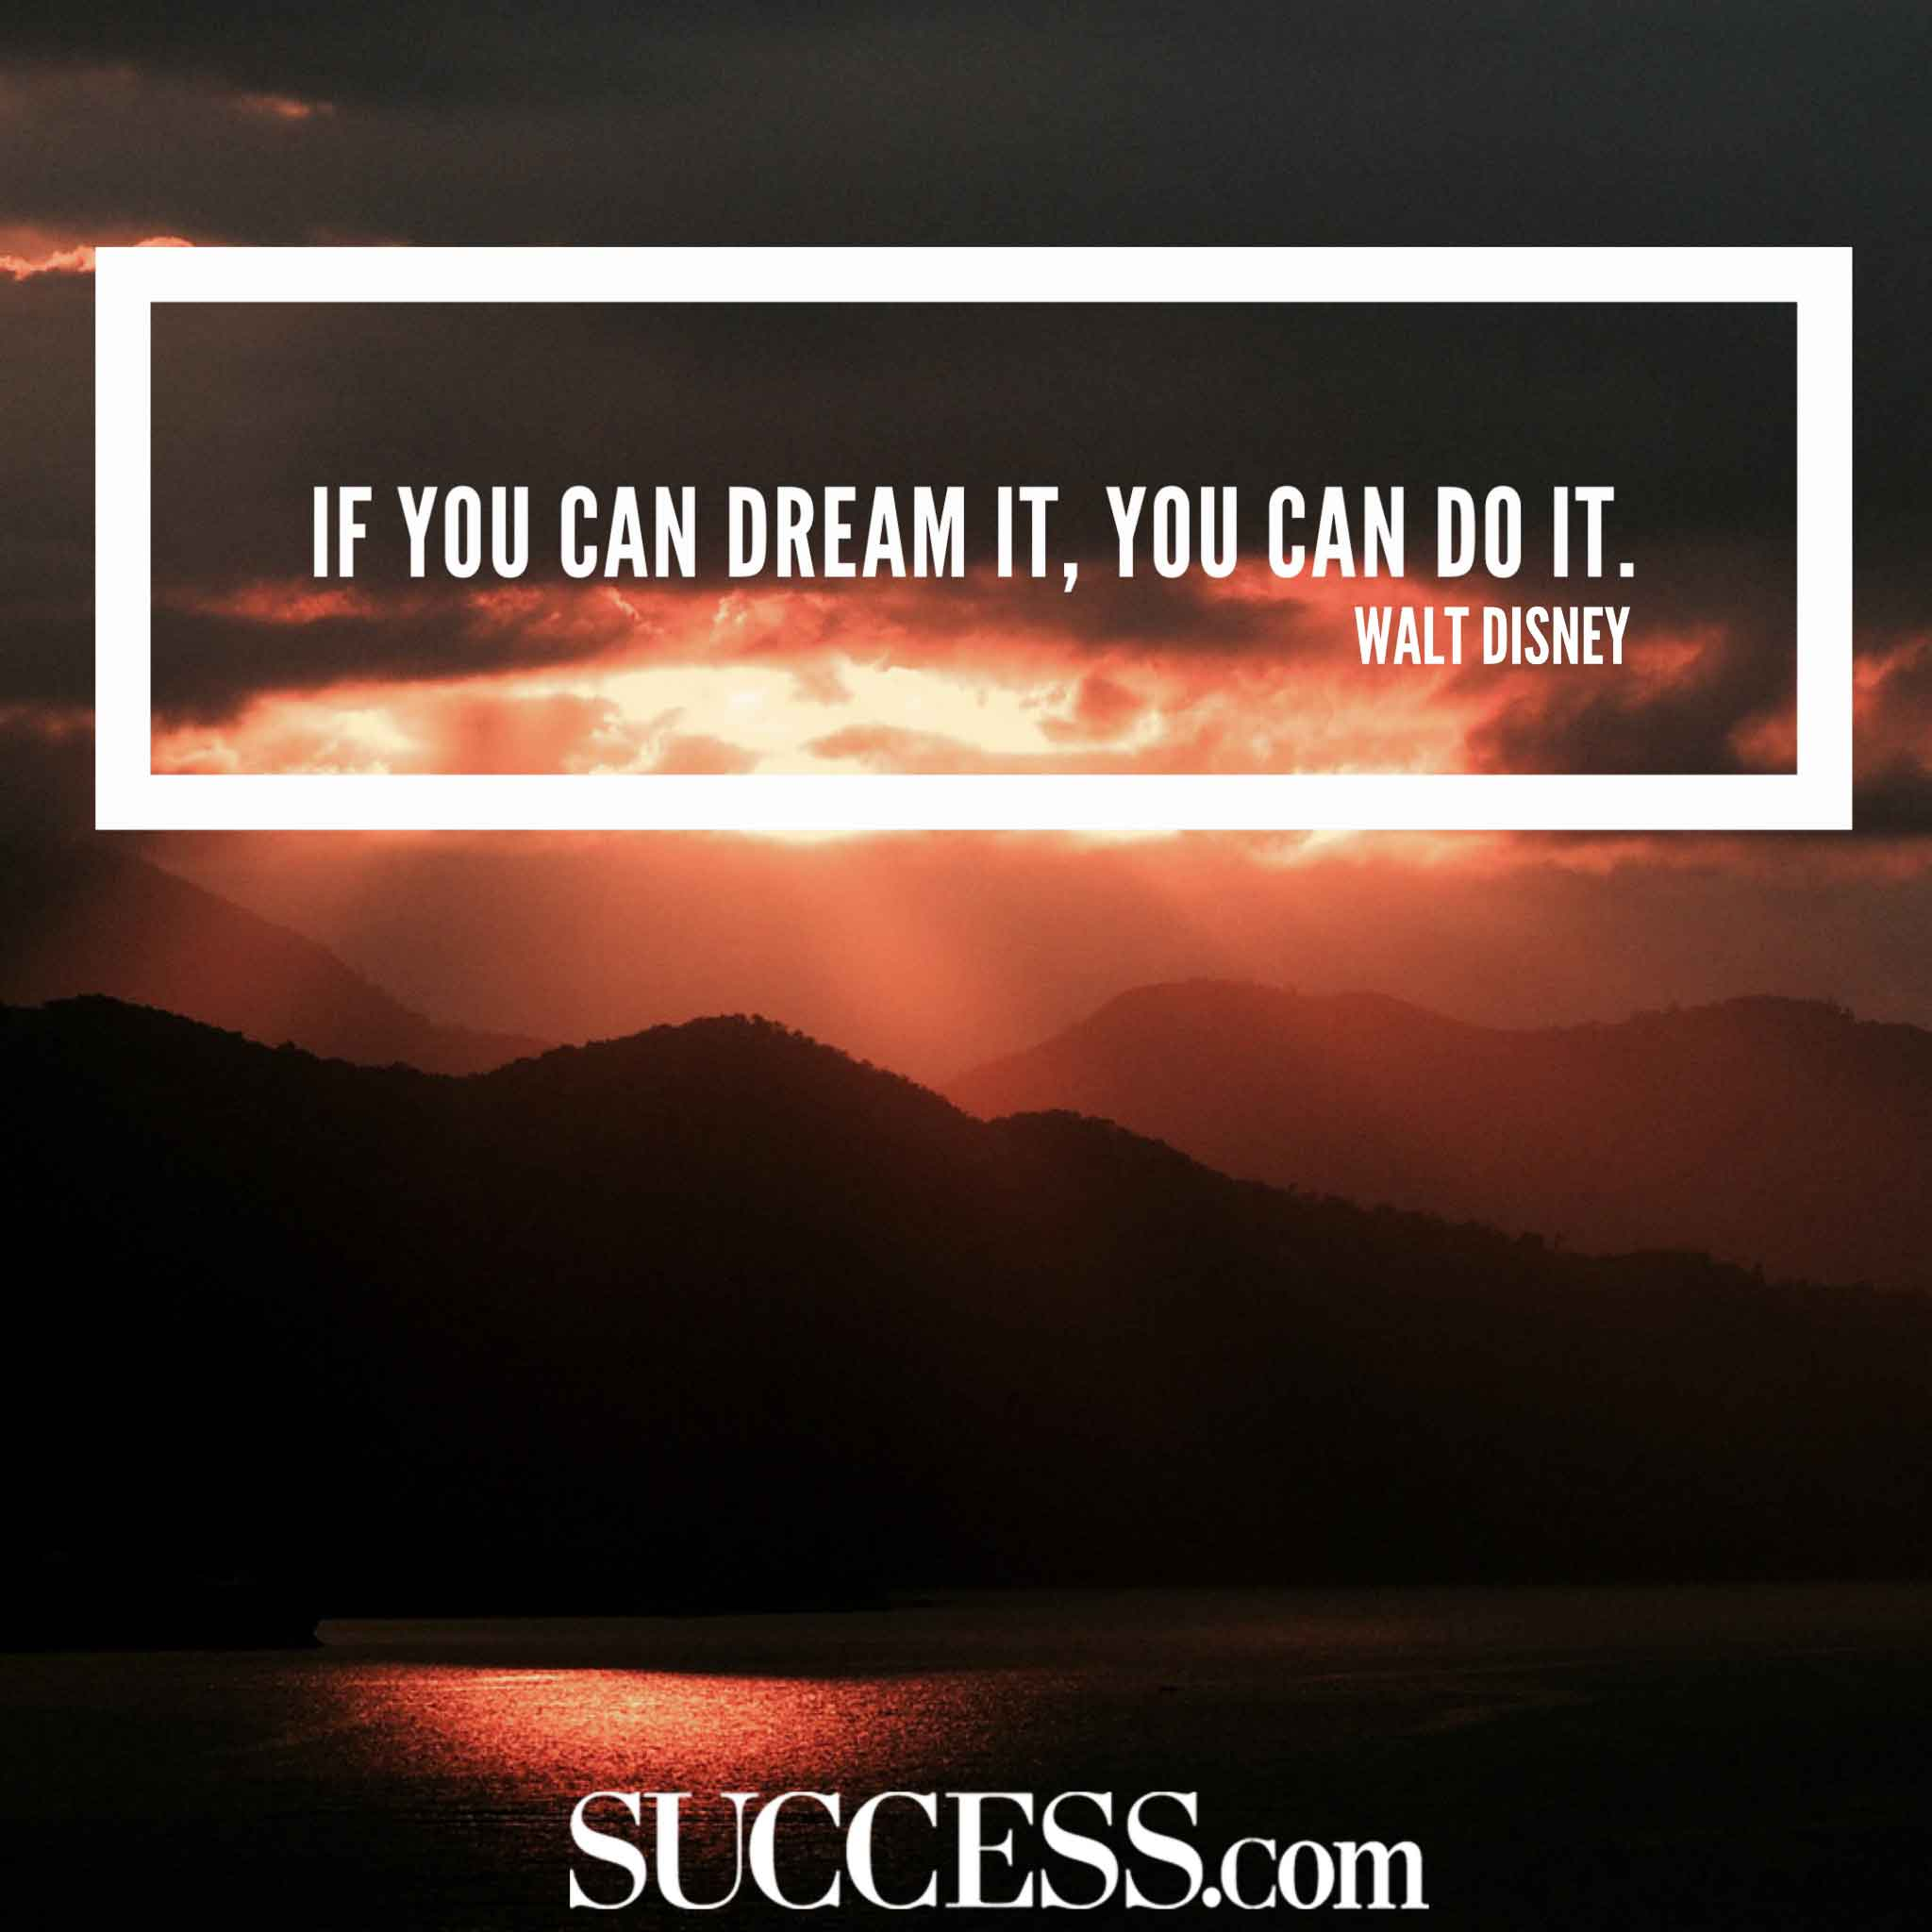 Motivational Quot: 17 Motivational Quotes To Help You Achieve Your Dreams